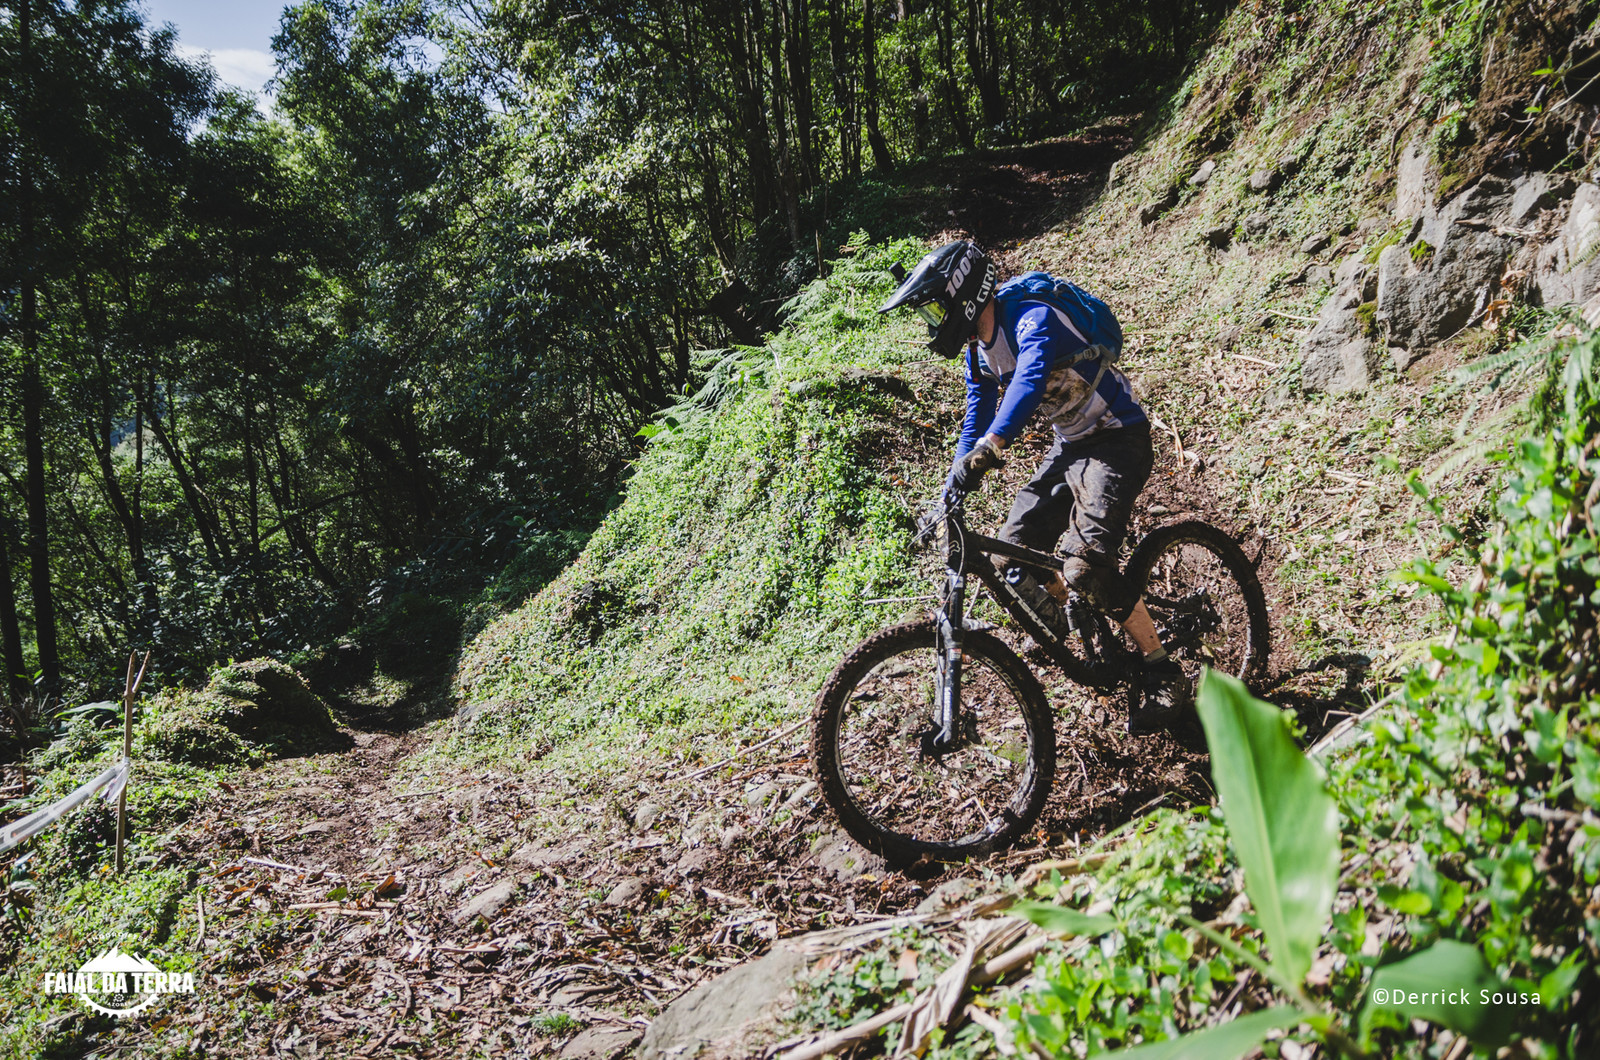 @Guy Bunting from the UK falling in love with the trails in the island